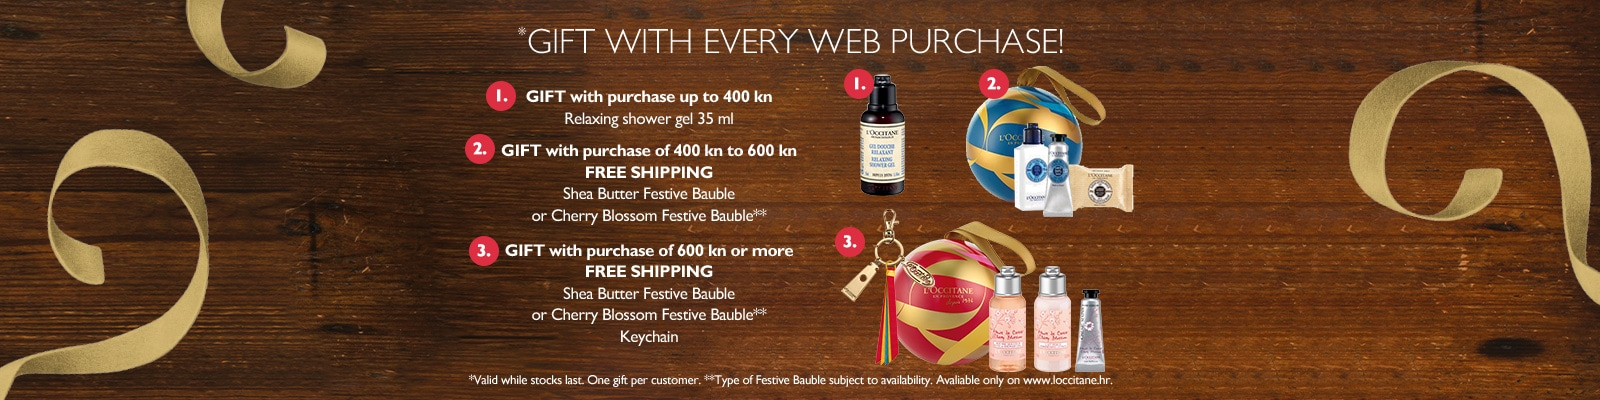 GIFT with every web purchase!